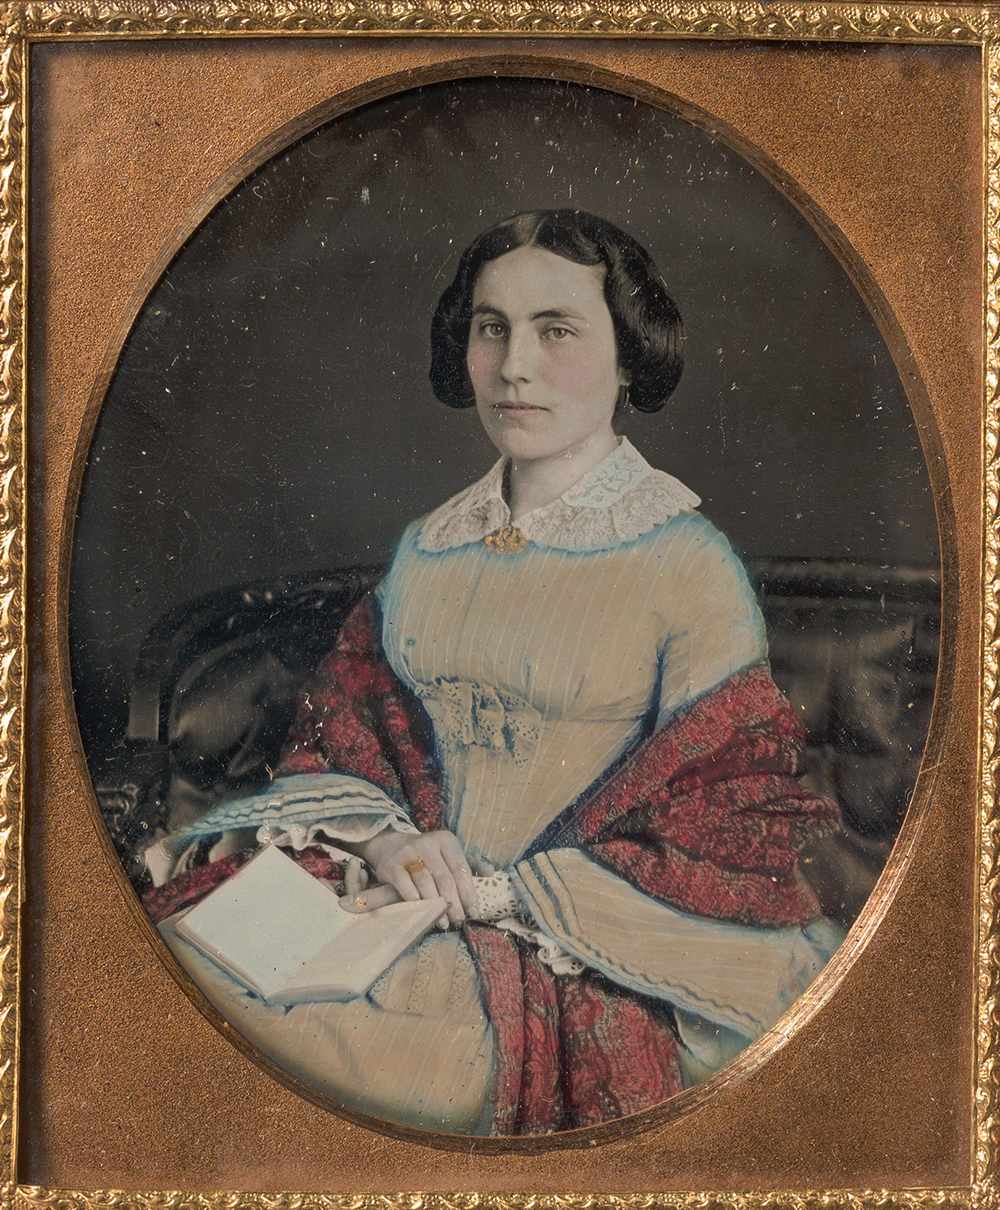 Seated young woman wearing a shawl, holding an open book in her lap, c. 1850. The Metropolitan Museum of Art, Bequest of Herbert Mitchell, 2008.